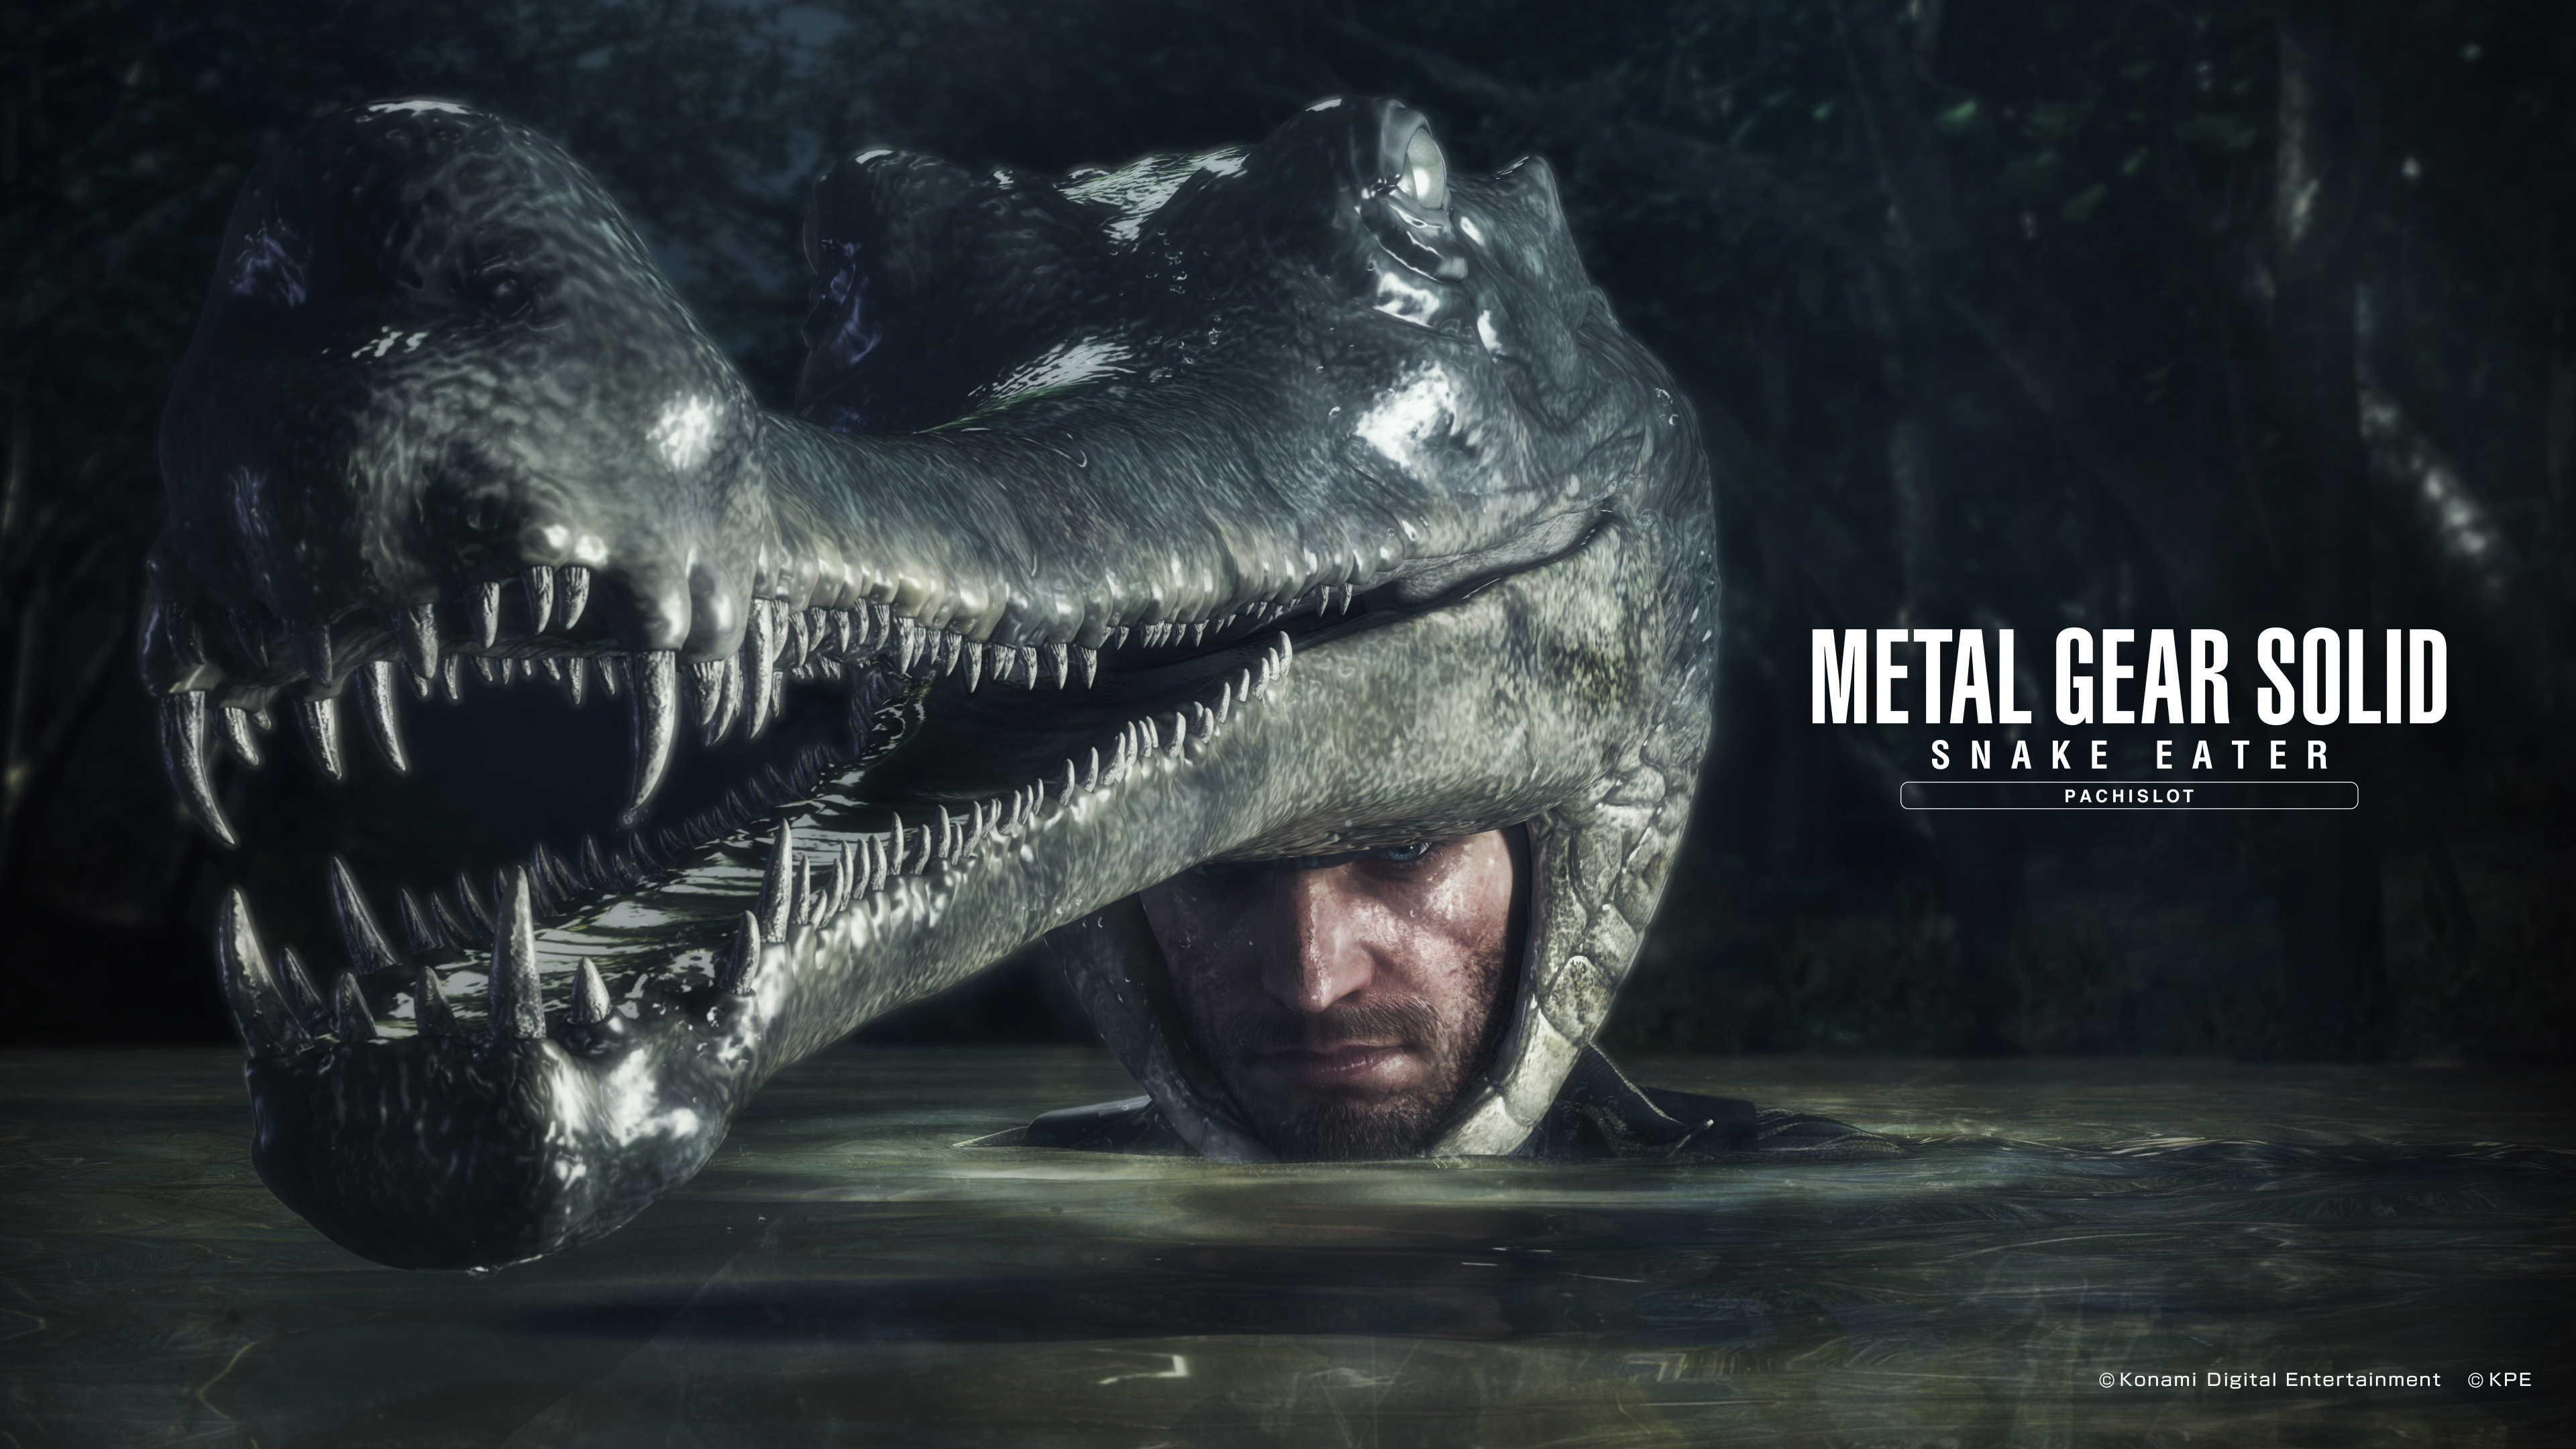 mgs-snake-eater-pachislot-wallpaper-pc-12